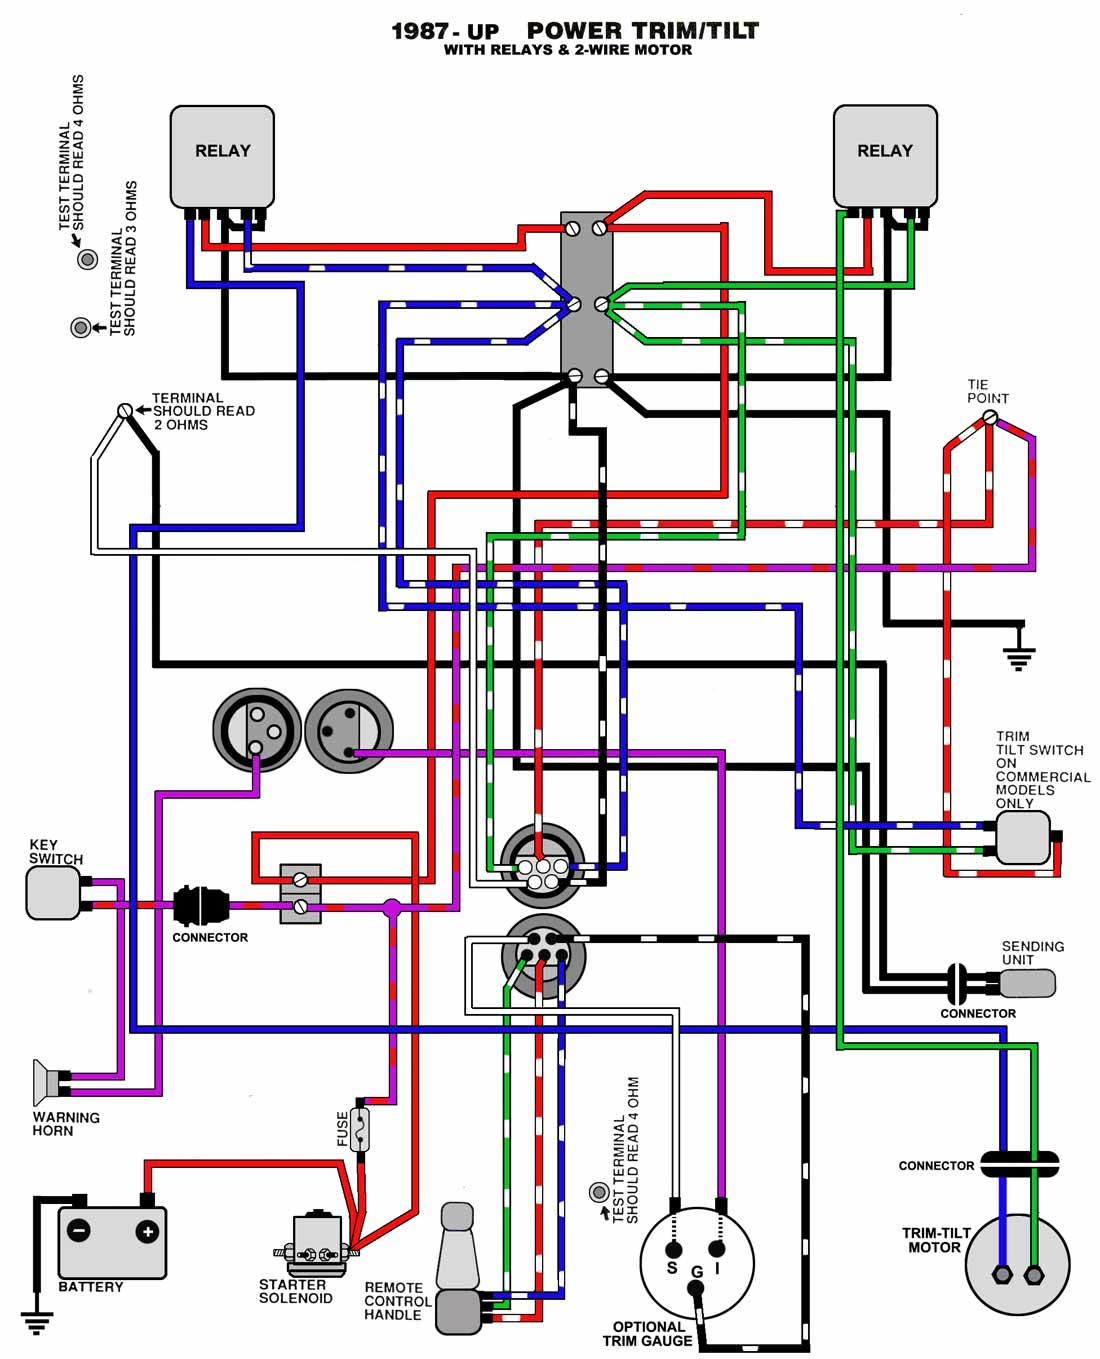 EVINRUDE JOHNSON Outboard Wiring Diagrams -- MASTERTECH MARINE -- on golf cart 36 volt ezgo wiring diagram, johnson ignition wiring diagram, evinrude outboard ignition switch diagram, tilt and trim wiring diagram, johnson outboard wiring diagram, omc schematic diagrams, omc ignition with kill switch, tracker boat wiring diagram, omc inboard outboard wiring diagrams, omc key switch diagram, omc cobra 3.0 wiring diagrams, omc 4.3 wiring-diagram, 1984 evinrude 115 wire diagram, ignition coil wiring diagram, johnson 40 hp wiring diagram, mallory ignition wiring diagram, 5 wire ignition switch diagram, universal ignition switch diagram, two wire alternator wiring diagram, omc trim tilt system diagram,